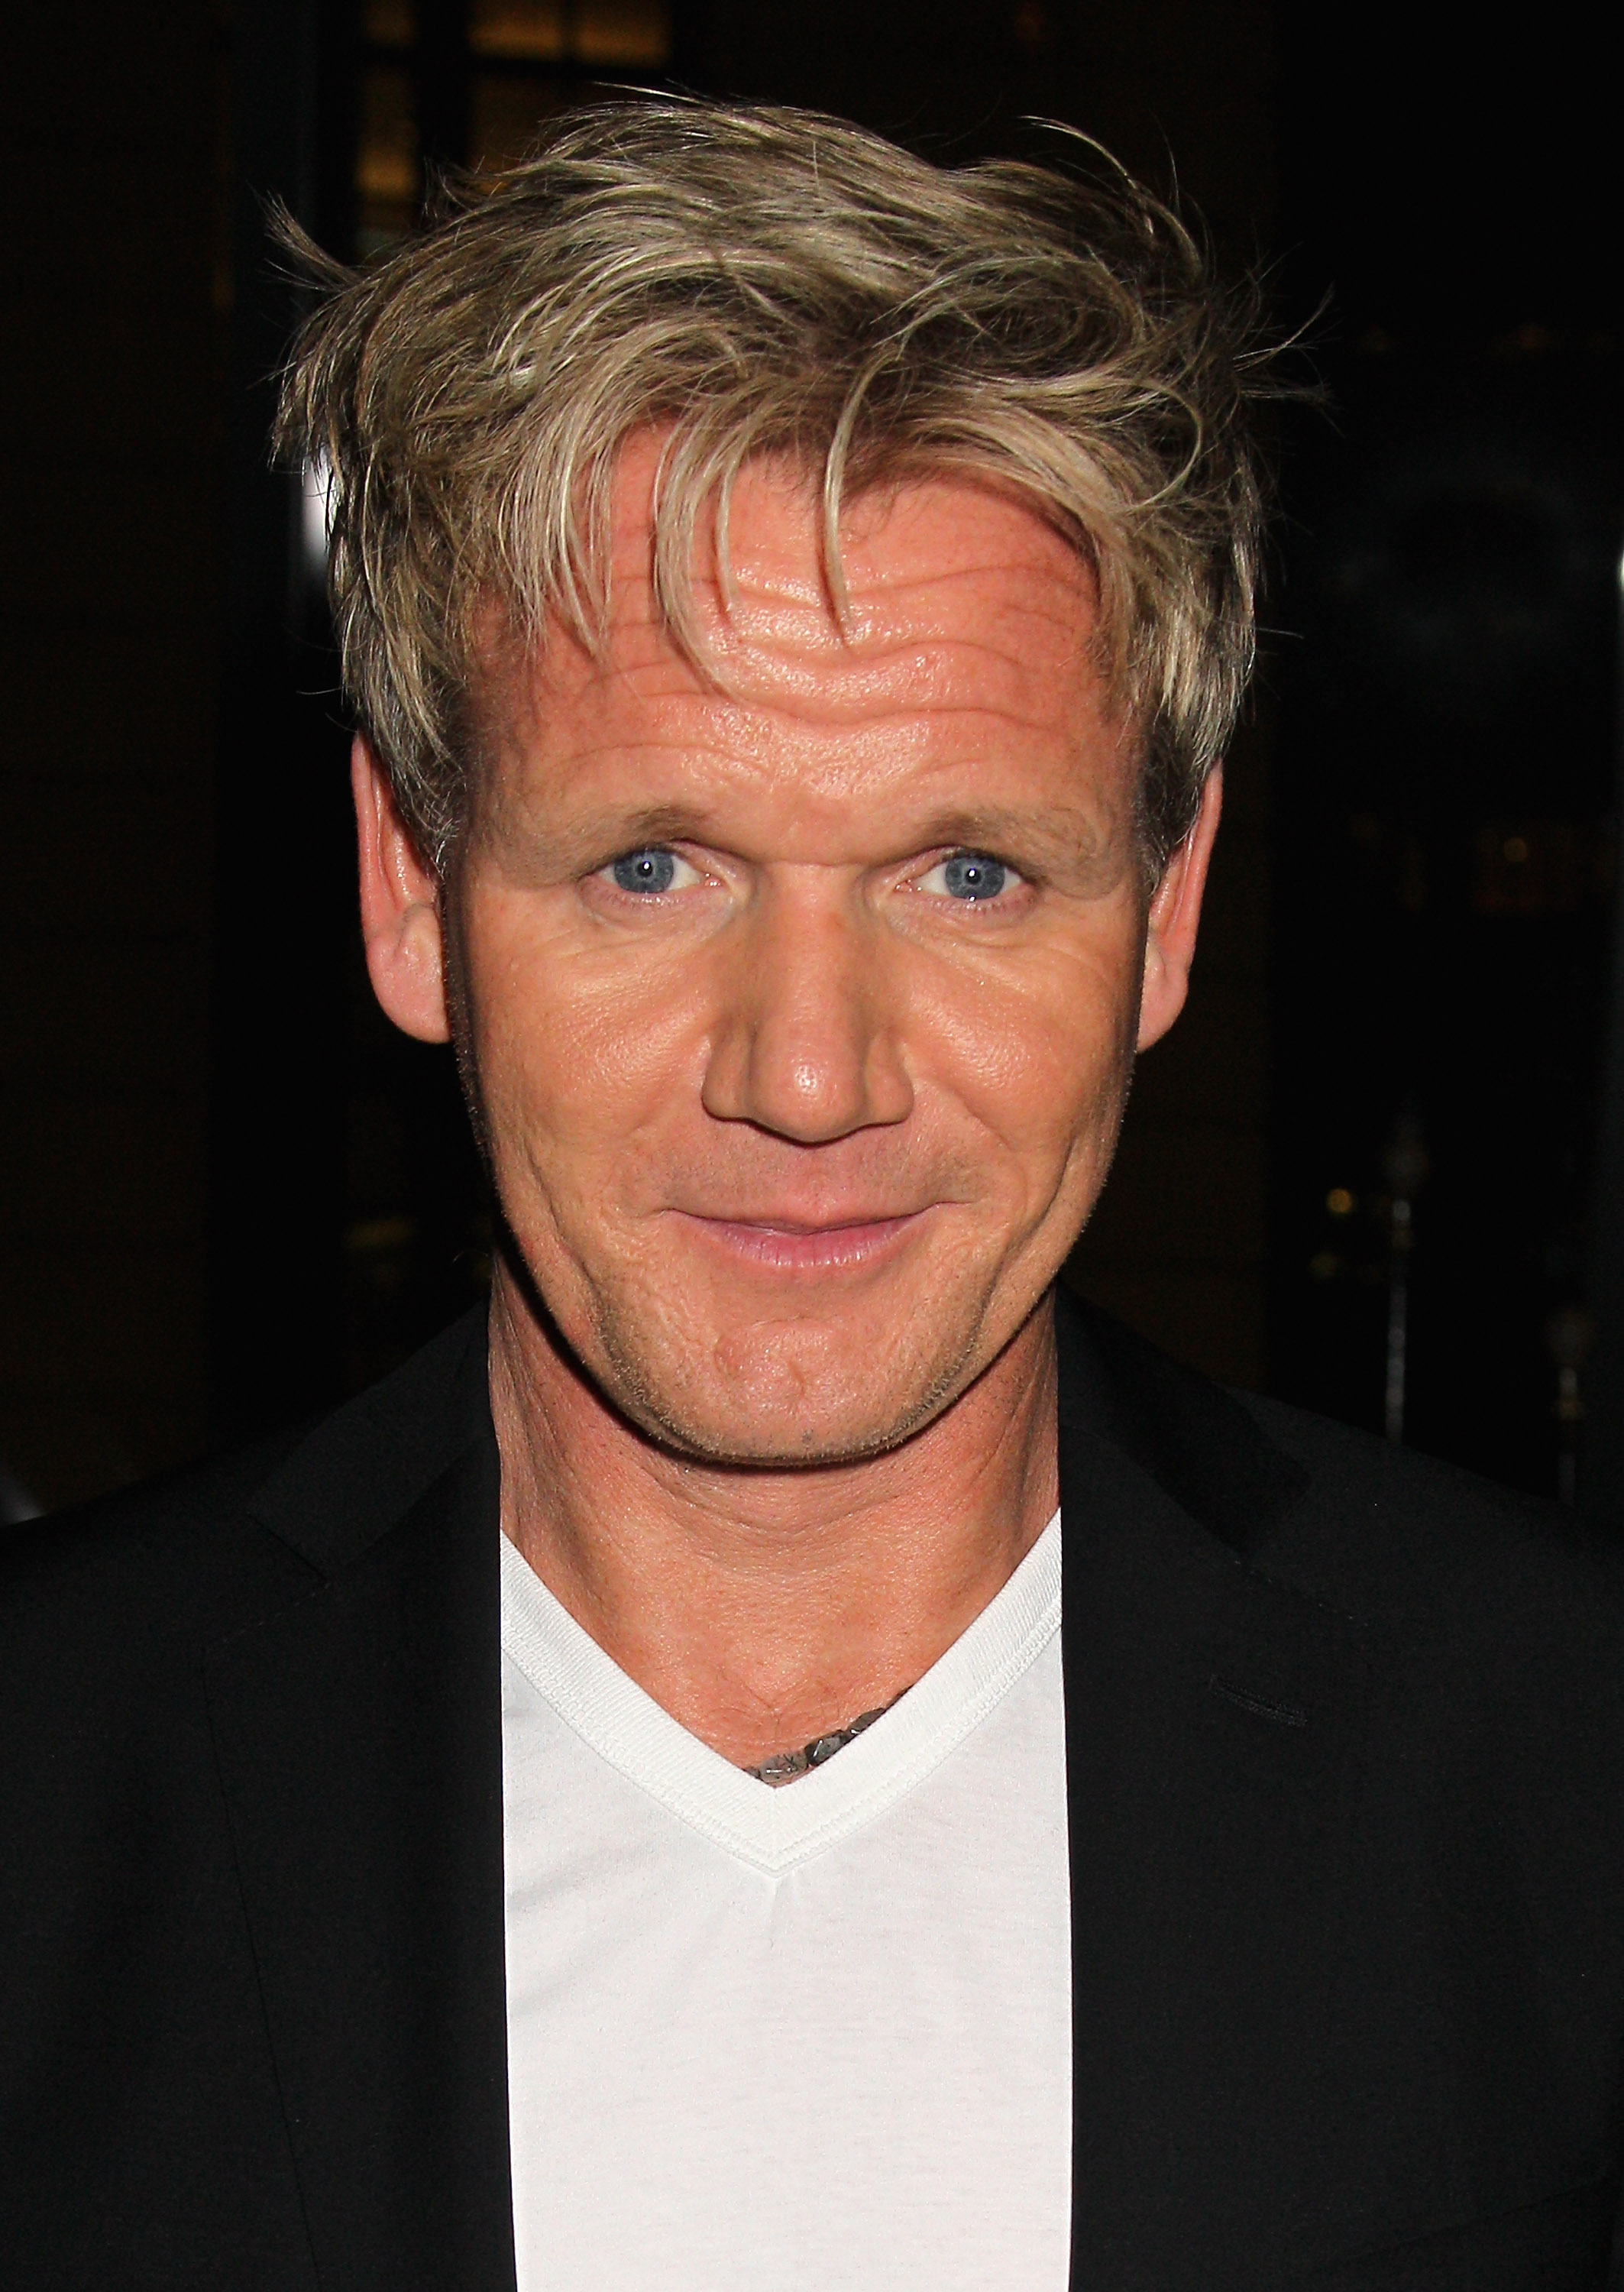 LONDON, ENGLAND - SEPTEMBER 17:  Gordon Ramsay attends the Jonathan Saunders official London Fashion Week party at Bread Street Kitchen, One New Change for London Fashion Week Spring/Summer 2012 on September 17, 2011 in London, England.  (Photo by Chris Jackson/Getty Images)